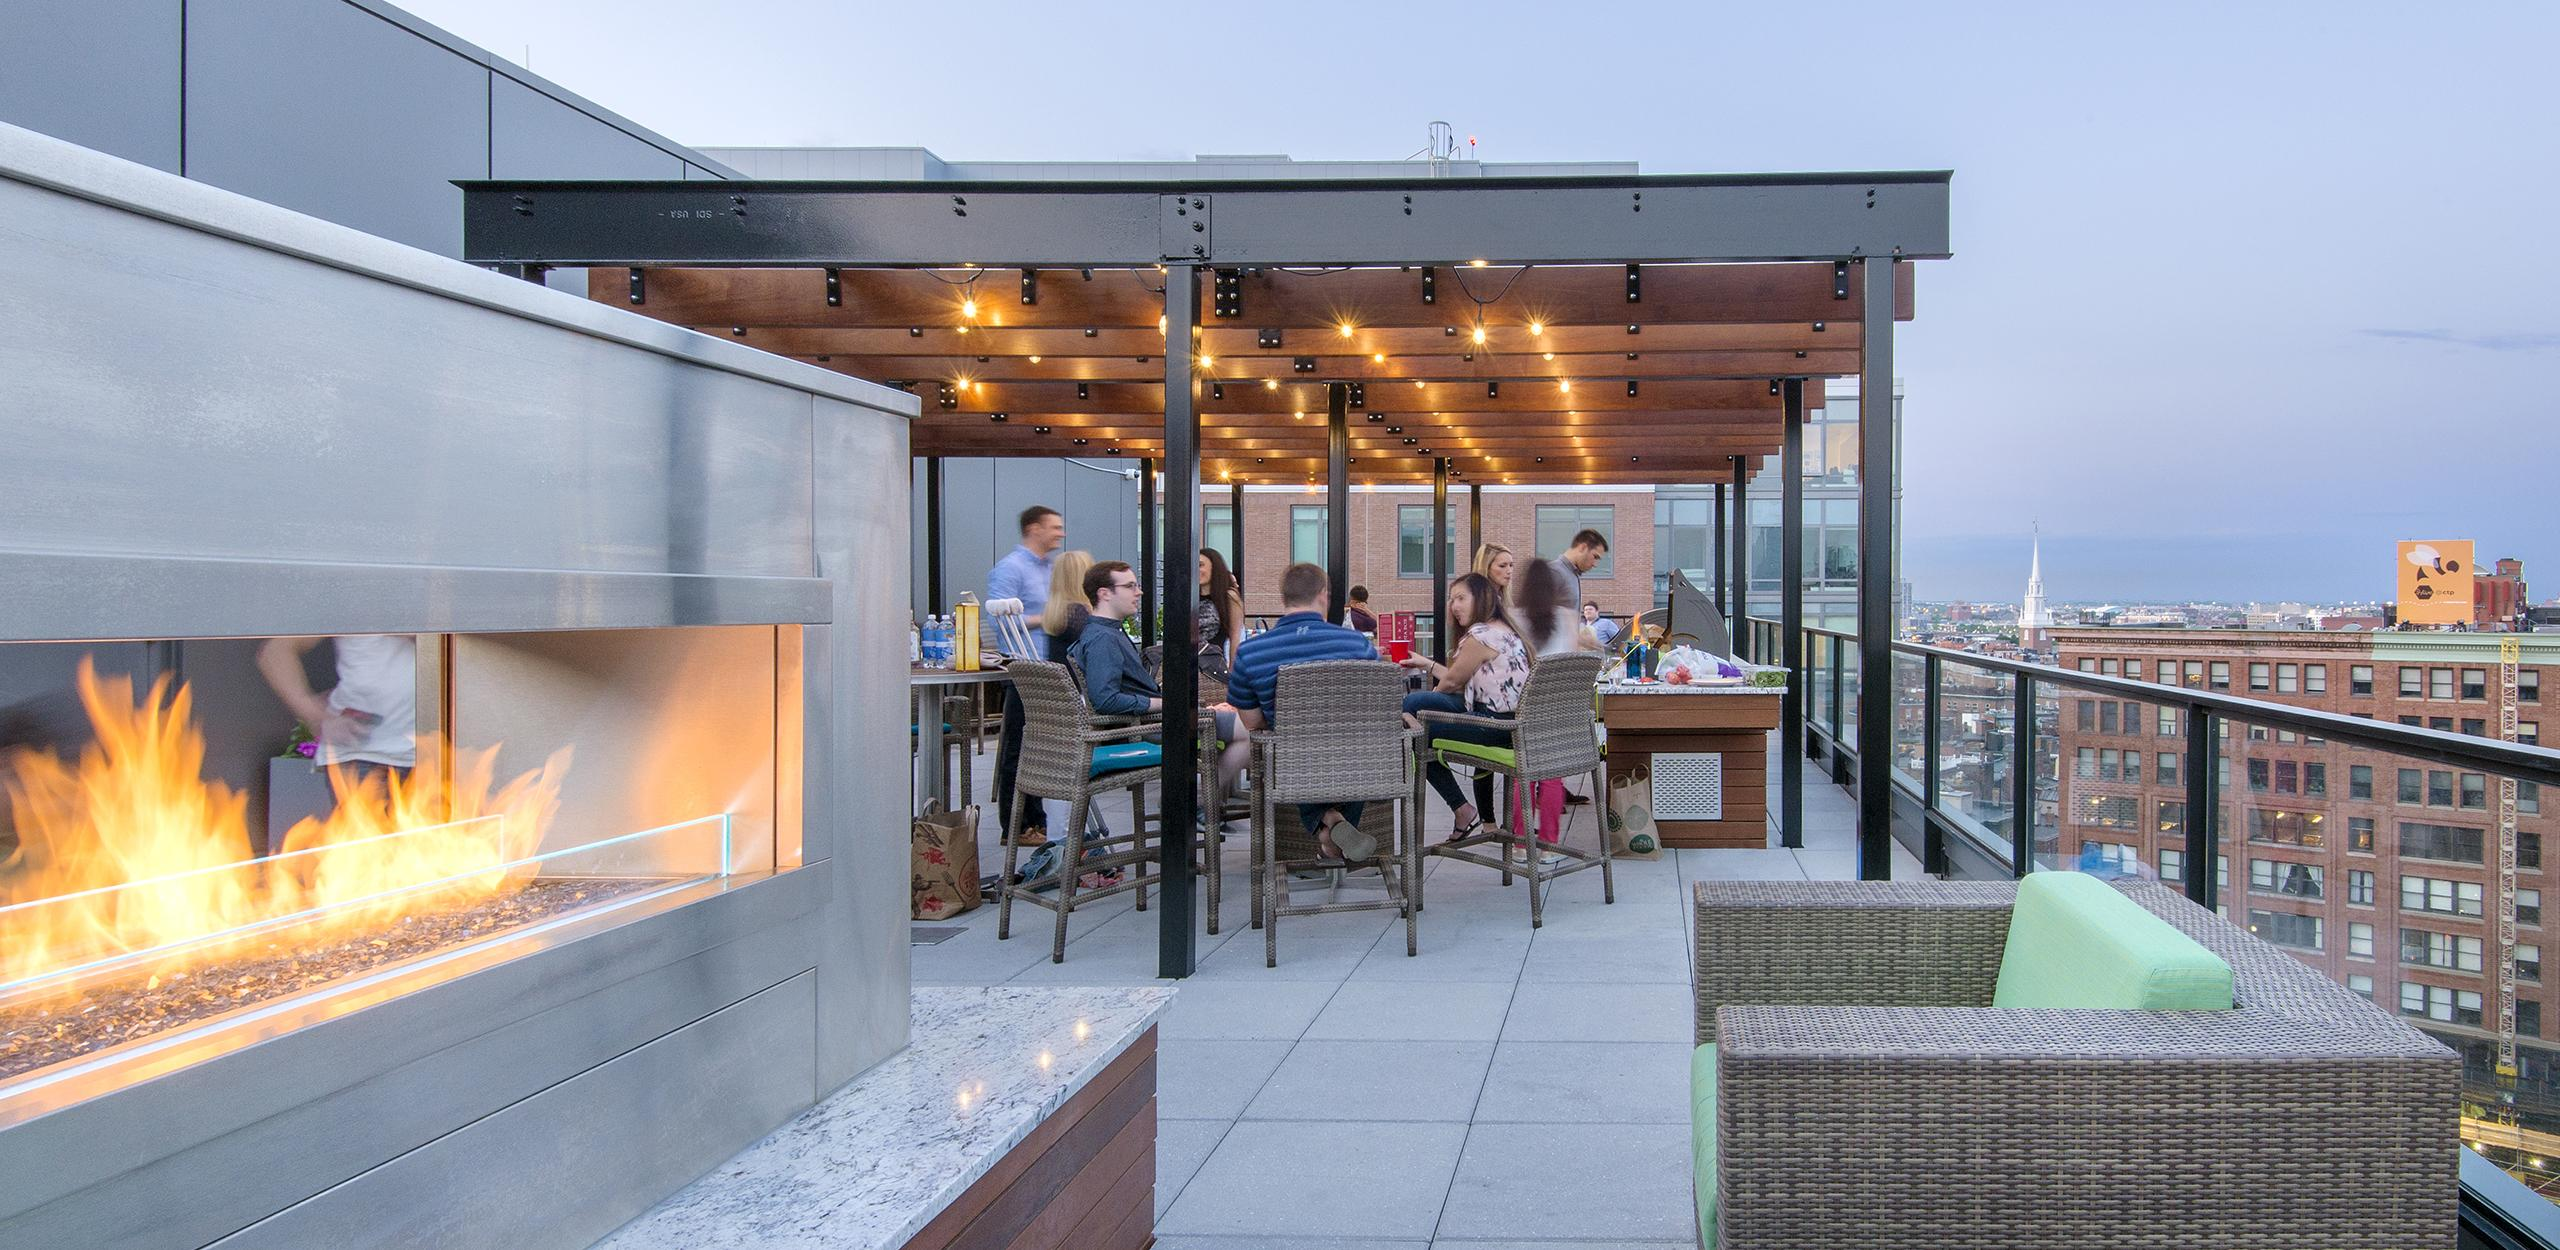 Roof deck renovation for a luxury apartment community in Boston, MA